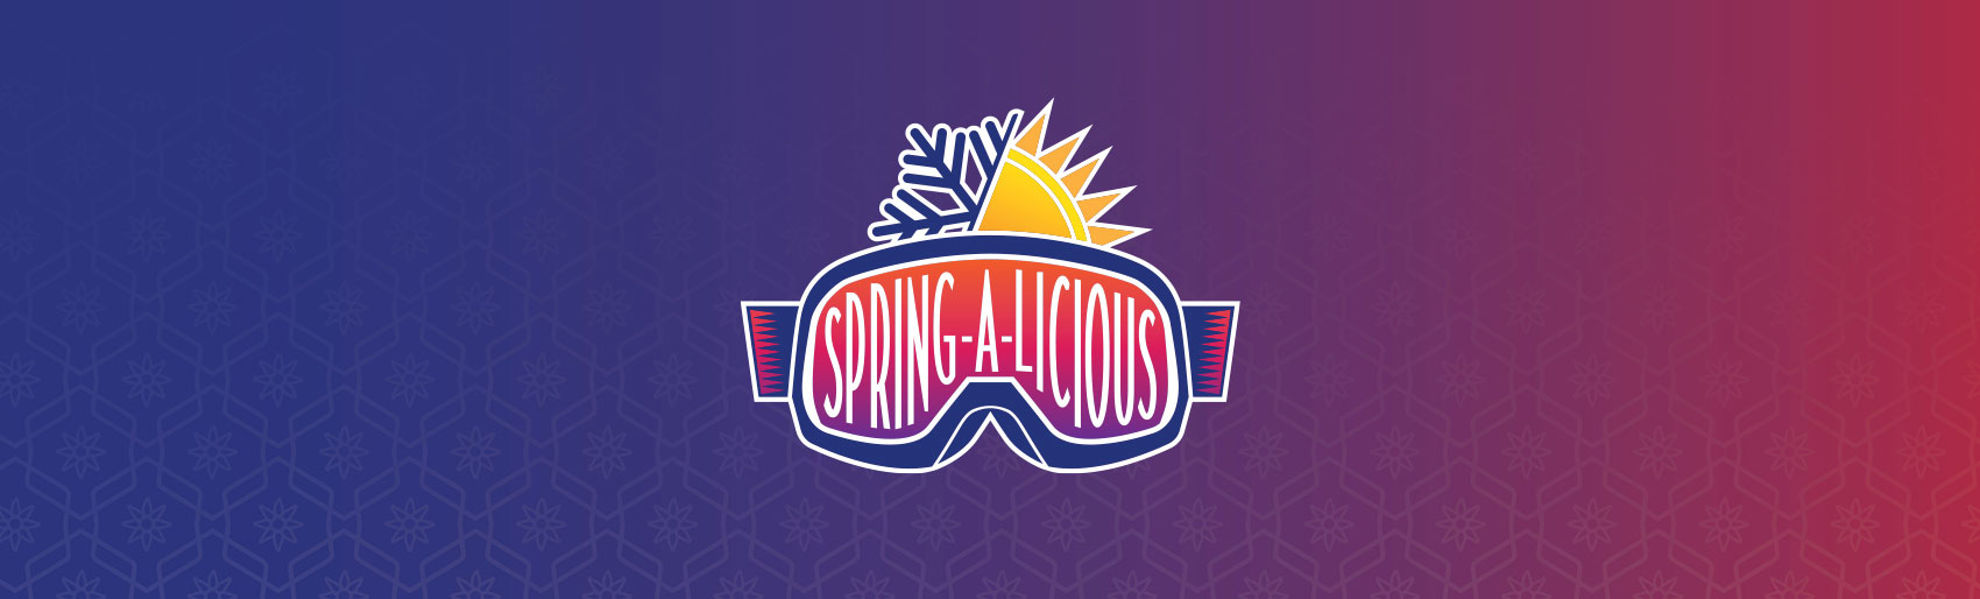 Picture of Spring-a-licious Pass